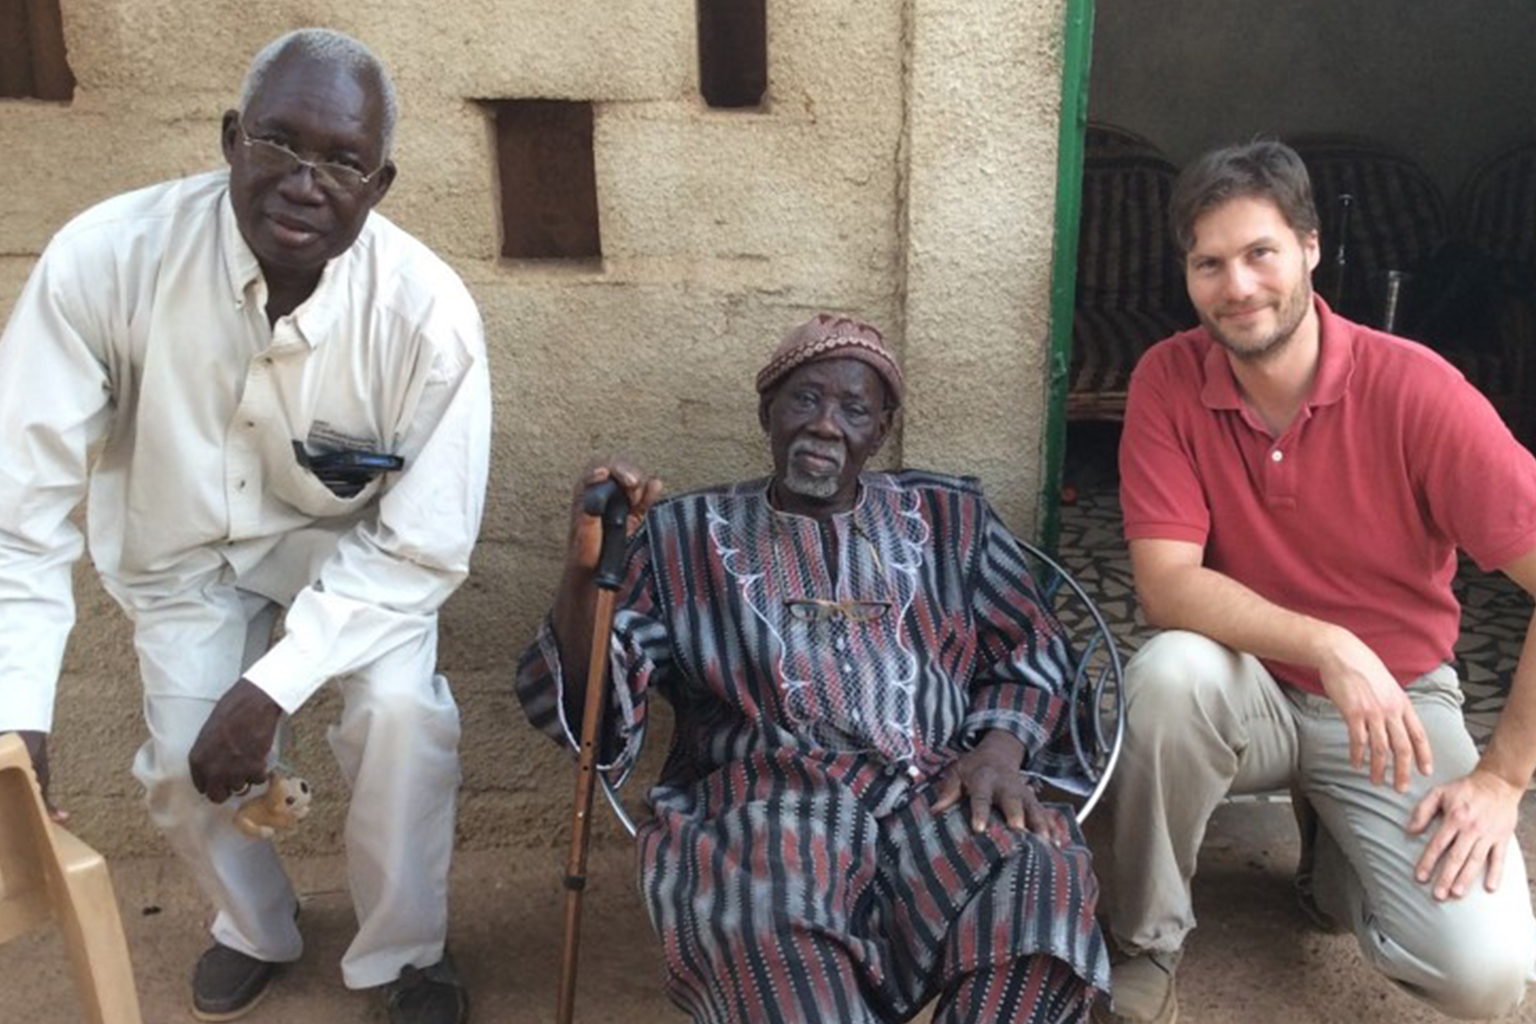 three men in Africa sitting next to cement wall